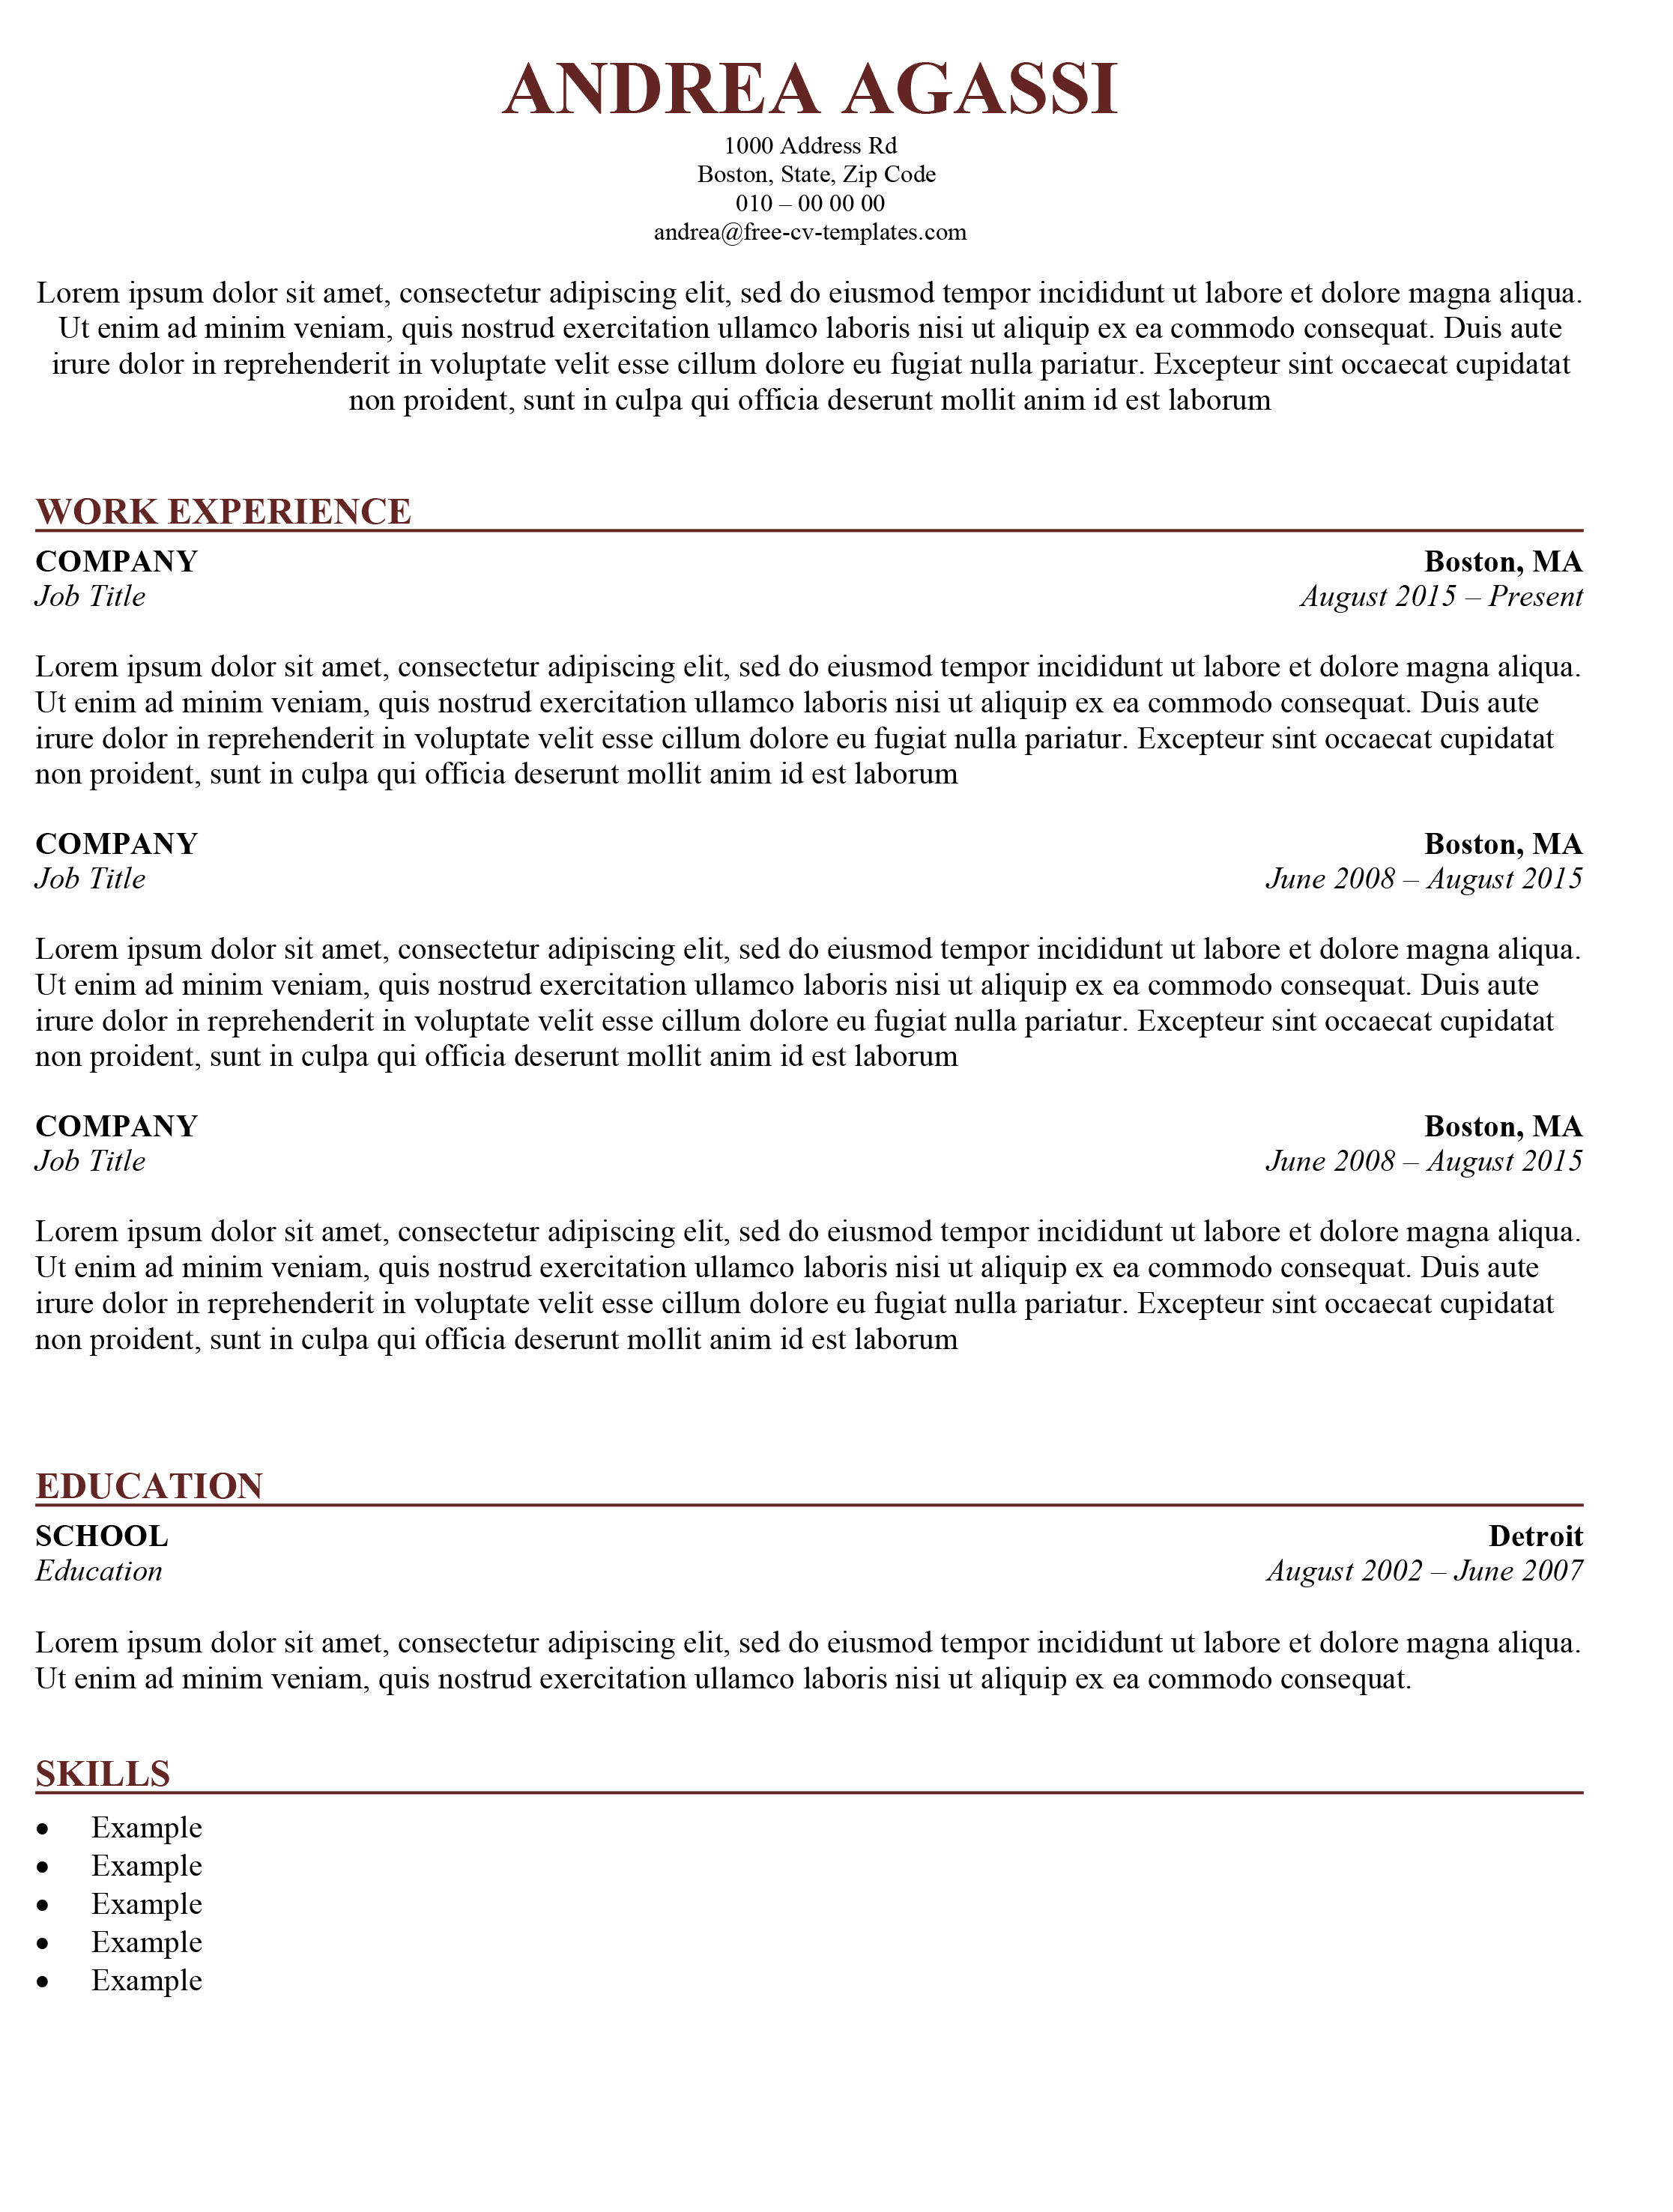 traditional cv templates land the job with our free word templates